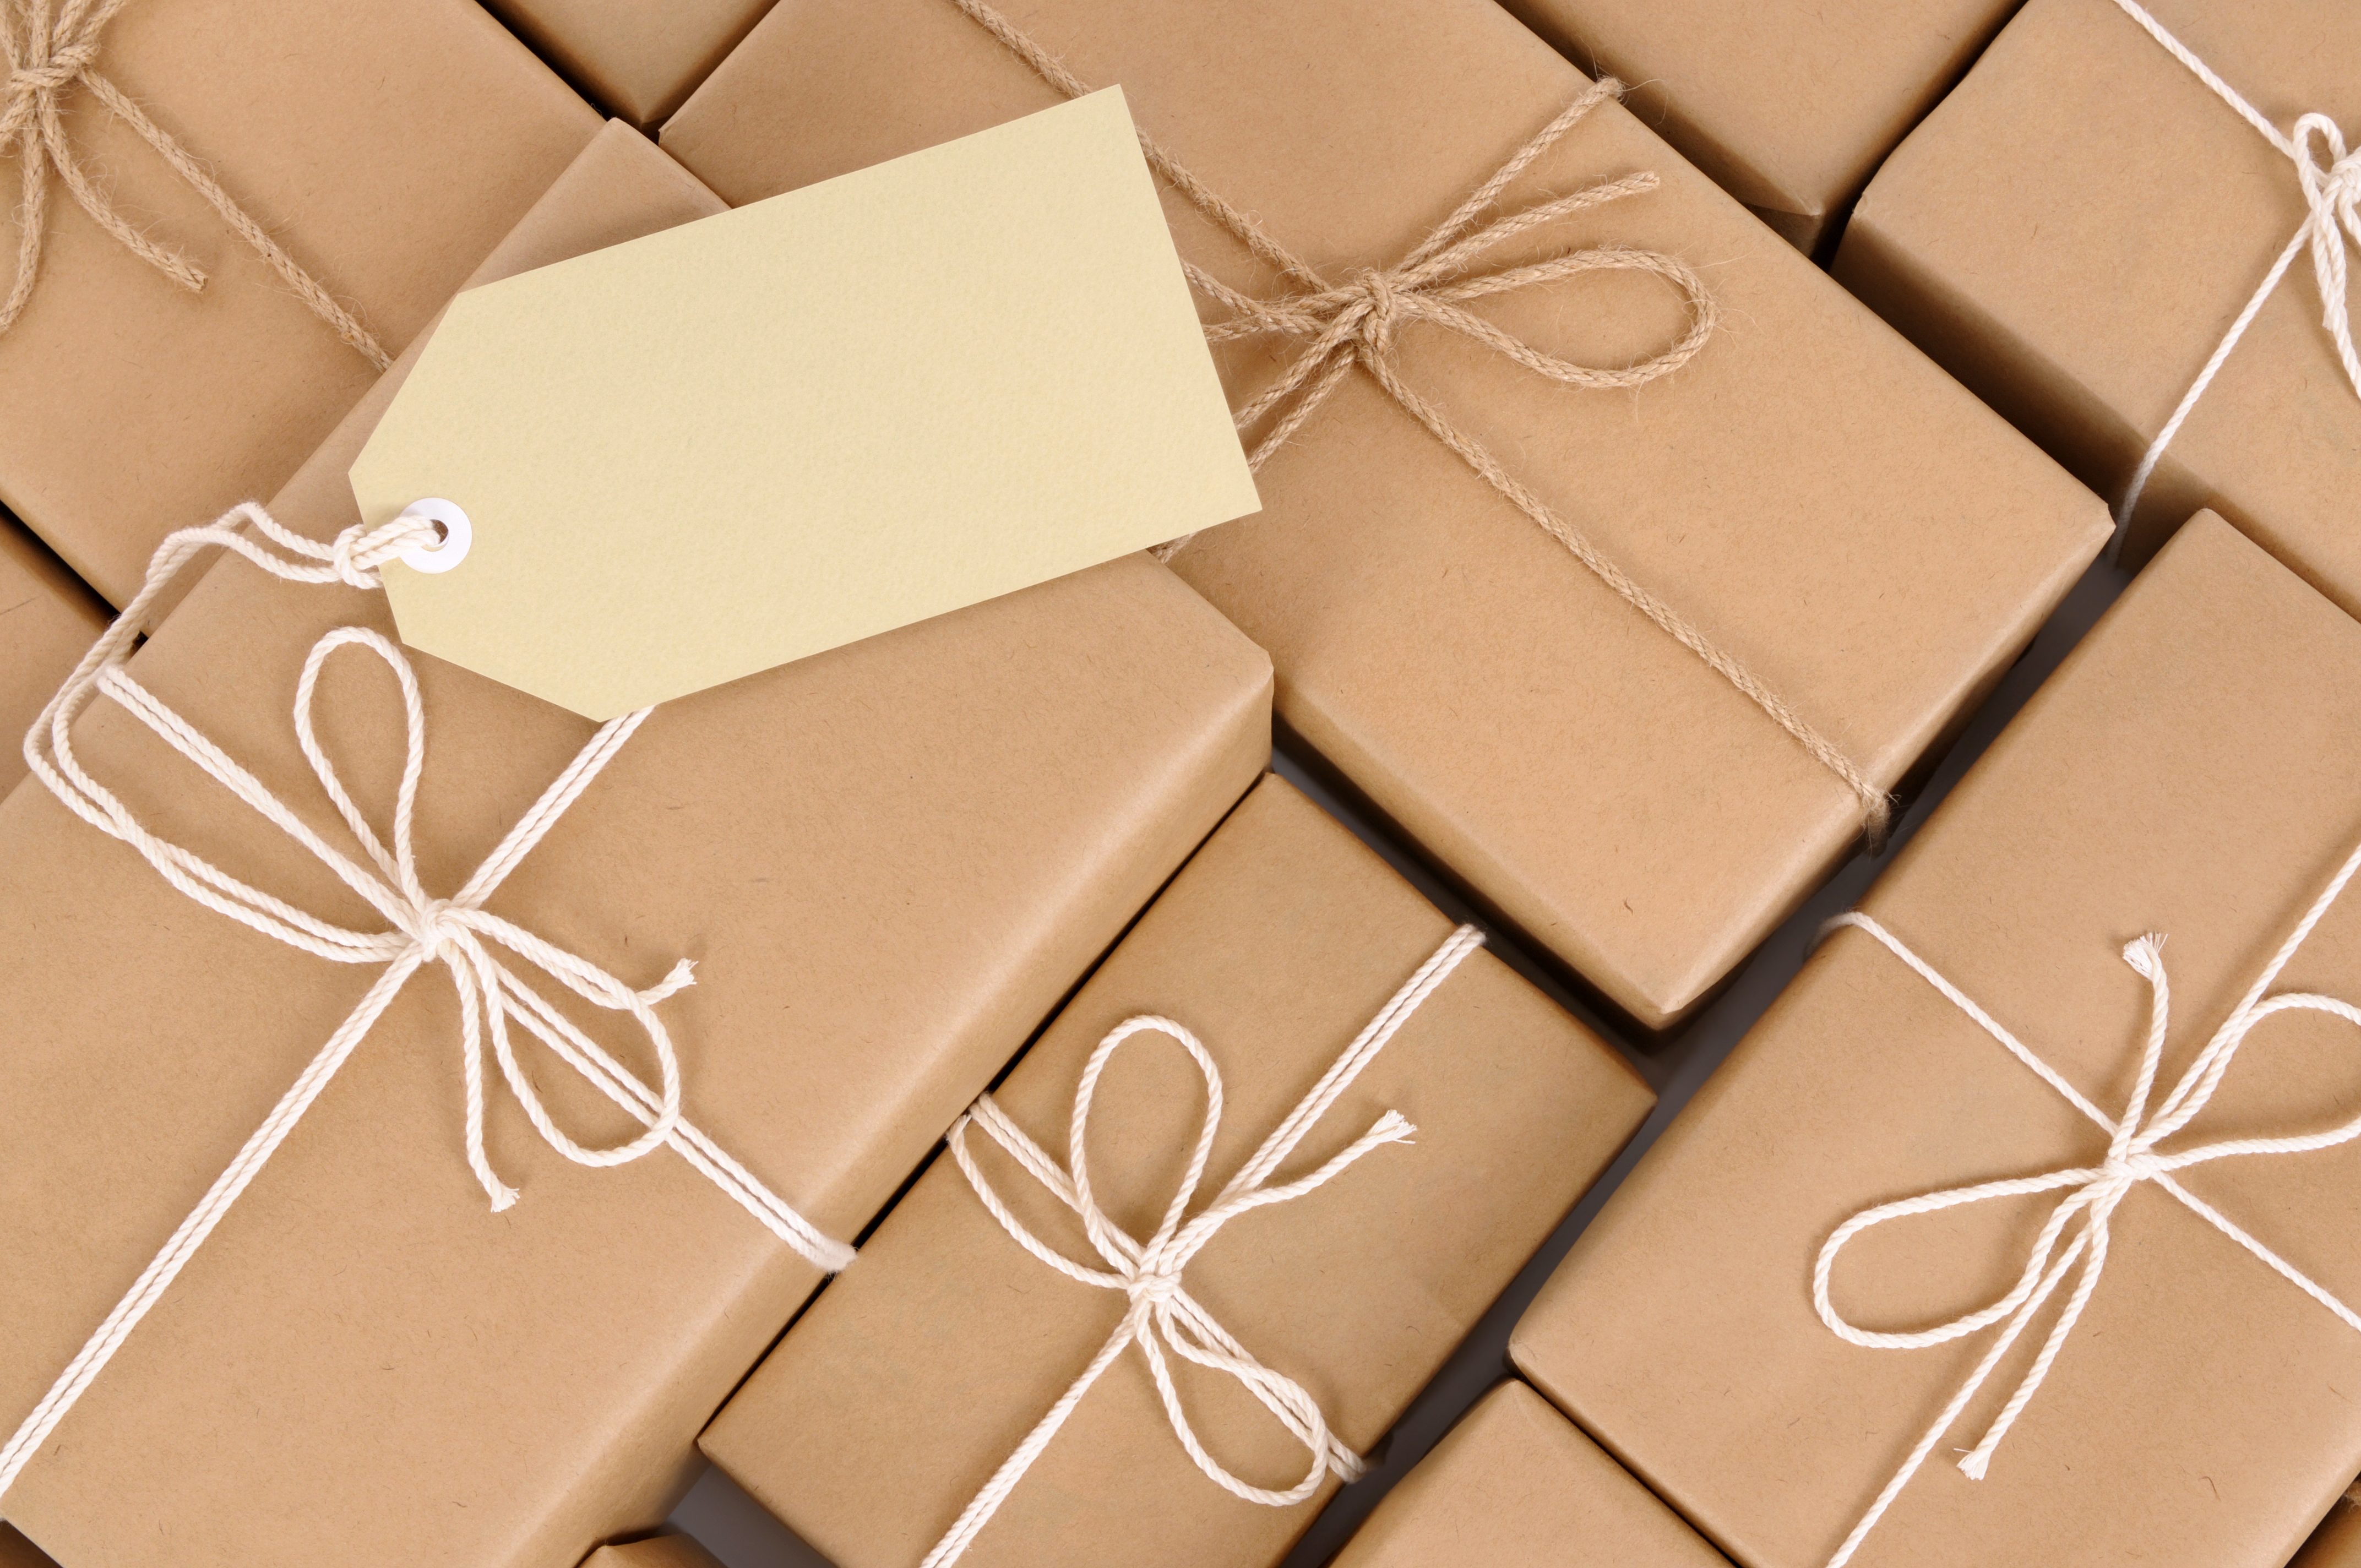 Rows-of-brown-paper-packages-2015